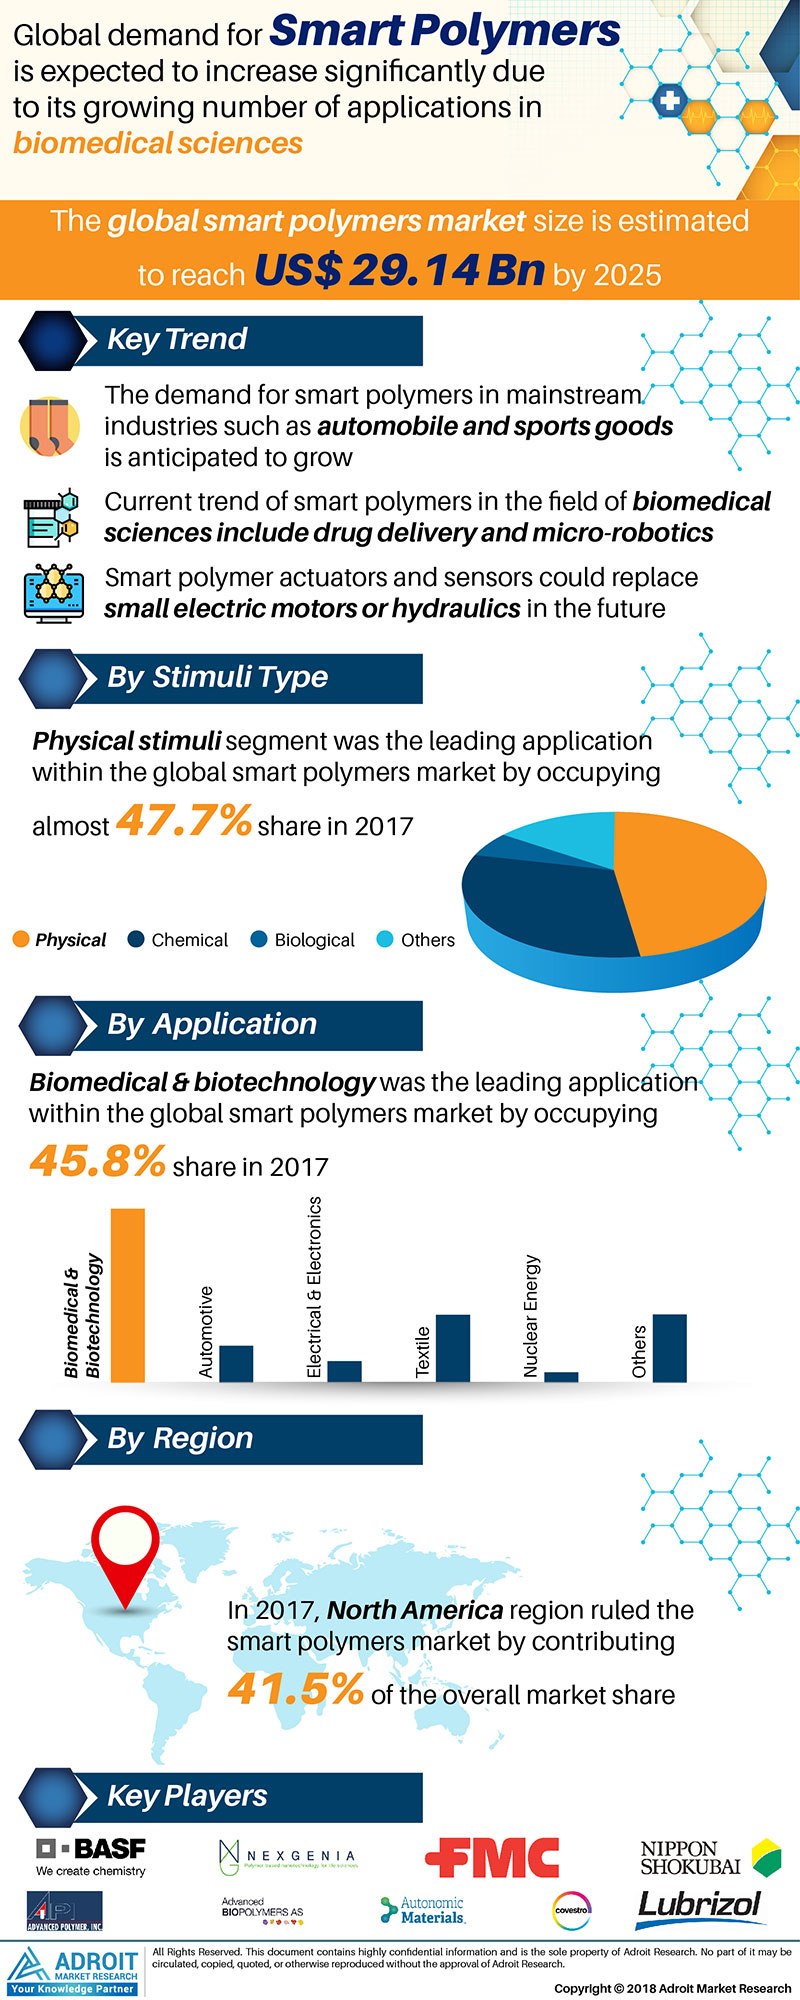 Global Smart Polymers Market Size By Stimulus Type, Application, Region and Forecast 2018 to 2025